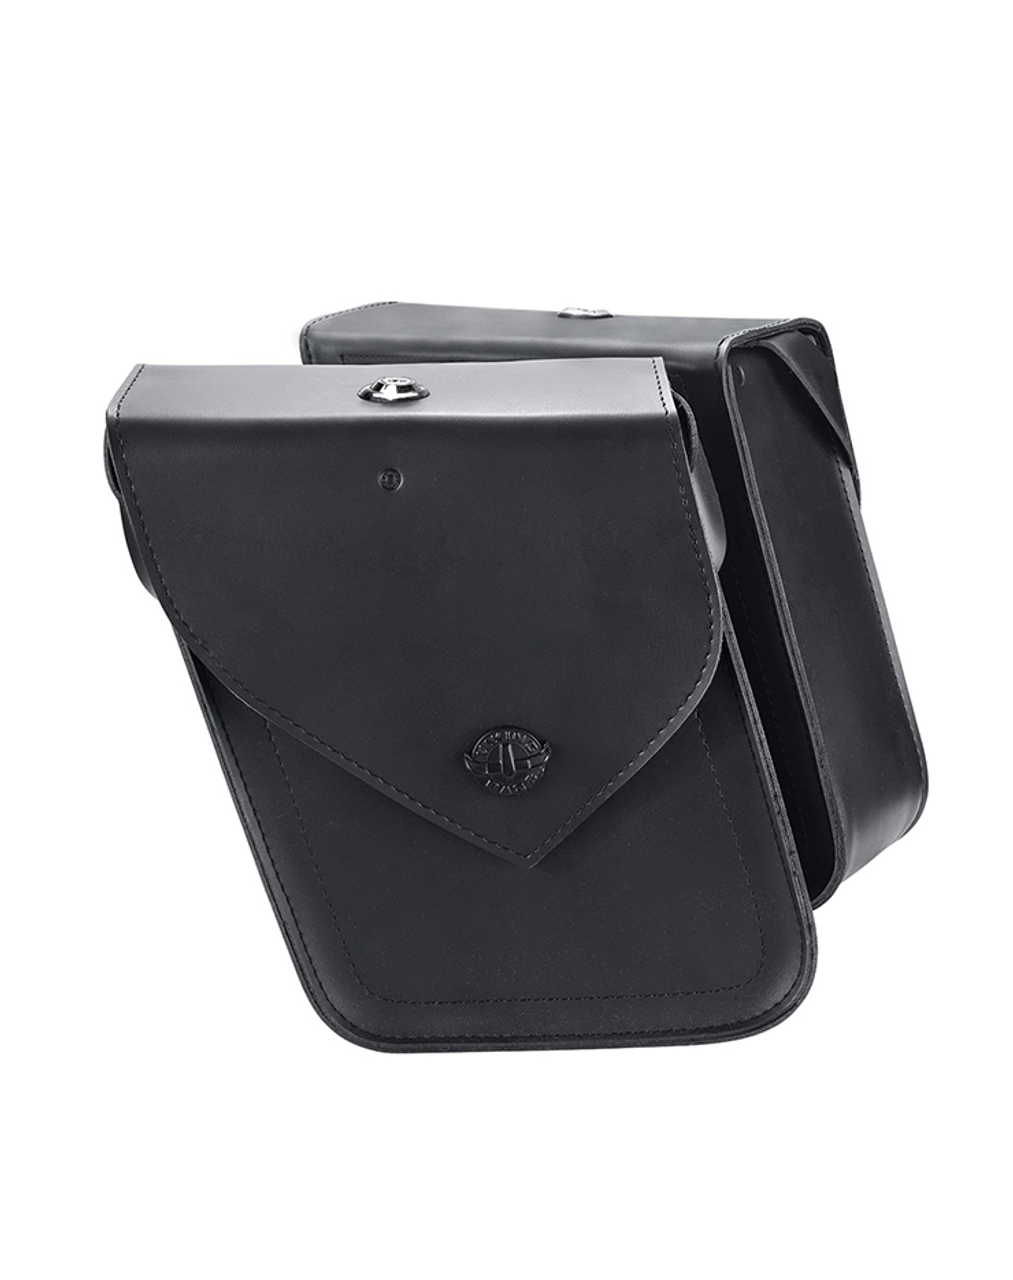 Viking Dark Age Compact Plain Leather Motorcycle Saddlebags For Sportster 1200 Low XL1200L Both Bags View